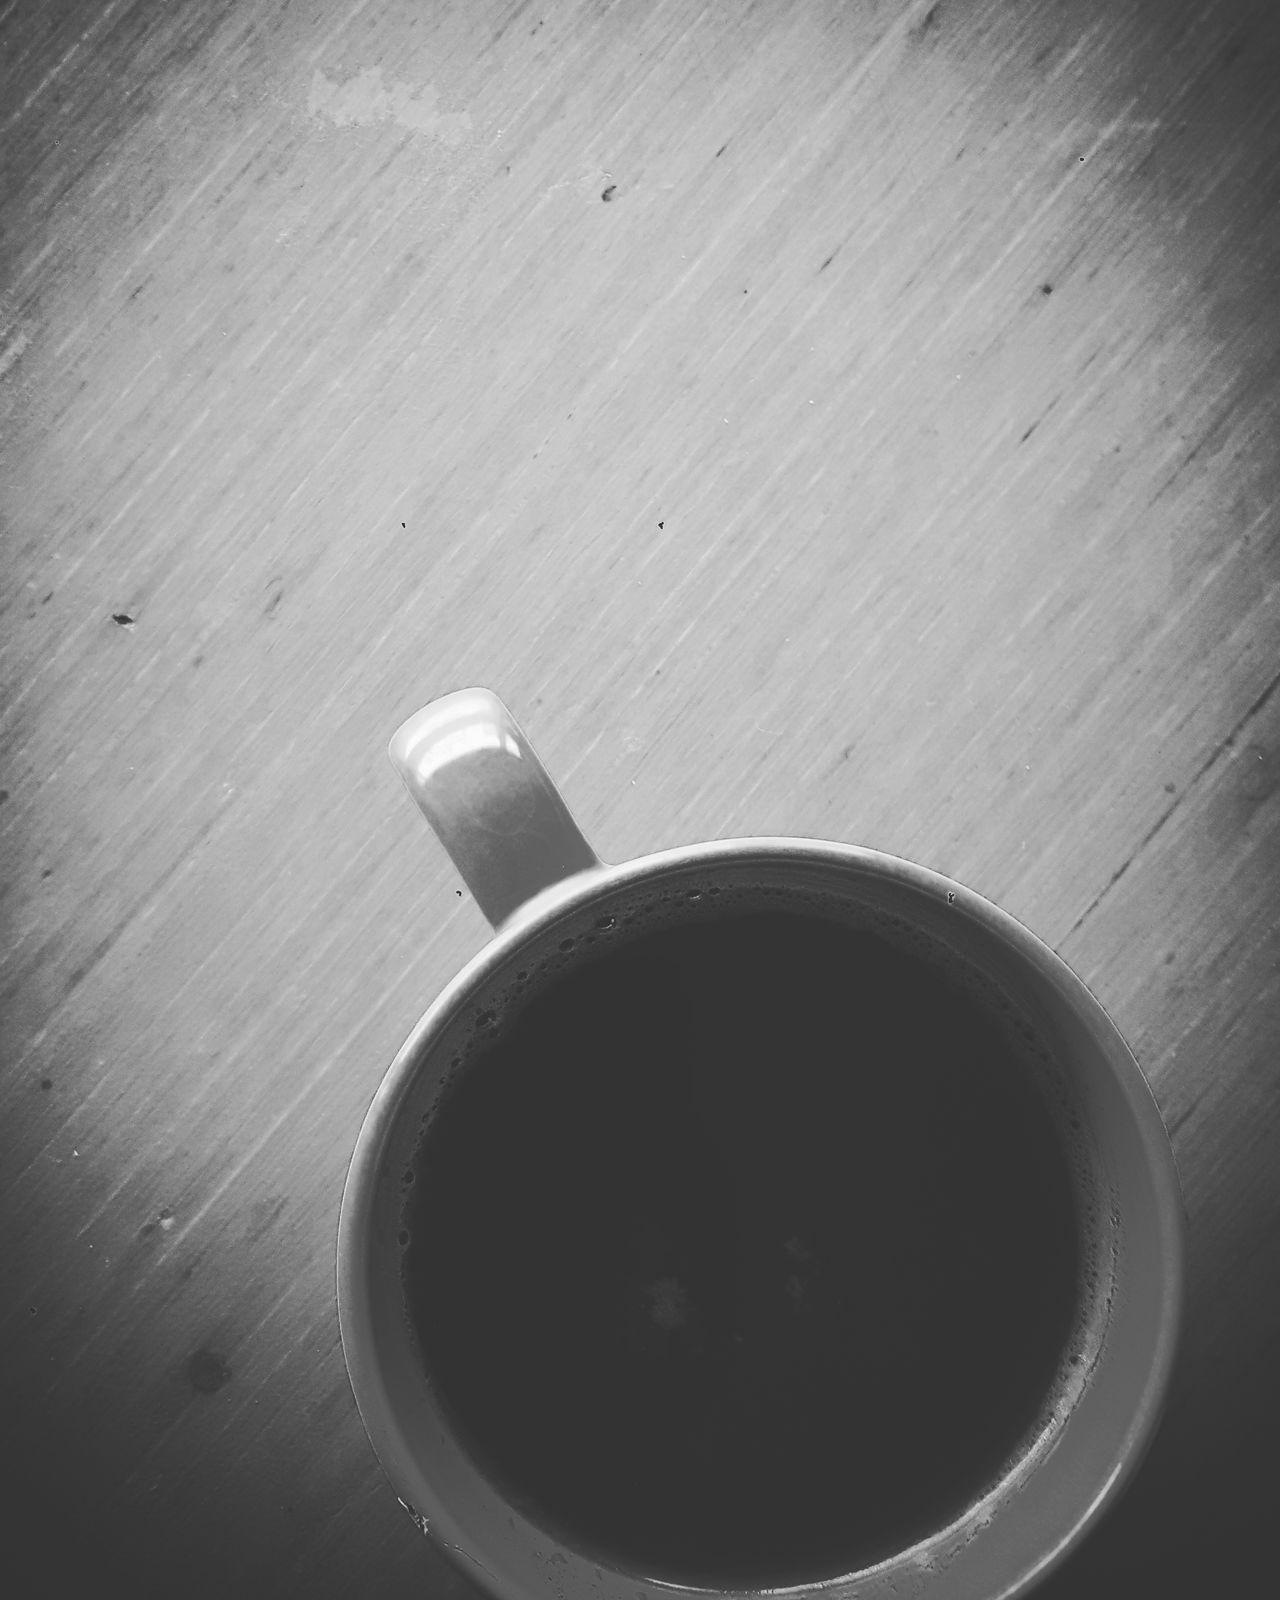 Home Morning Coffee Greek Coffee  Blackandwhite Photography Mobile Photography The Bird's Eye View